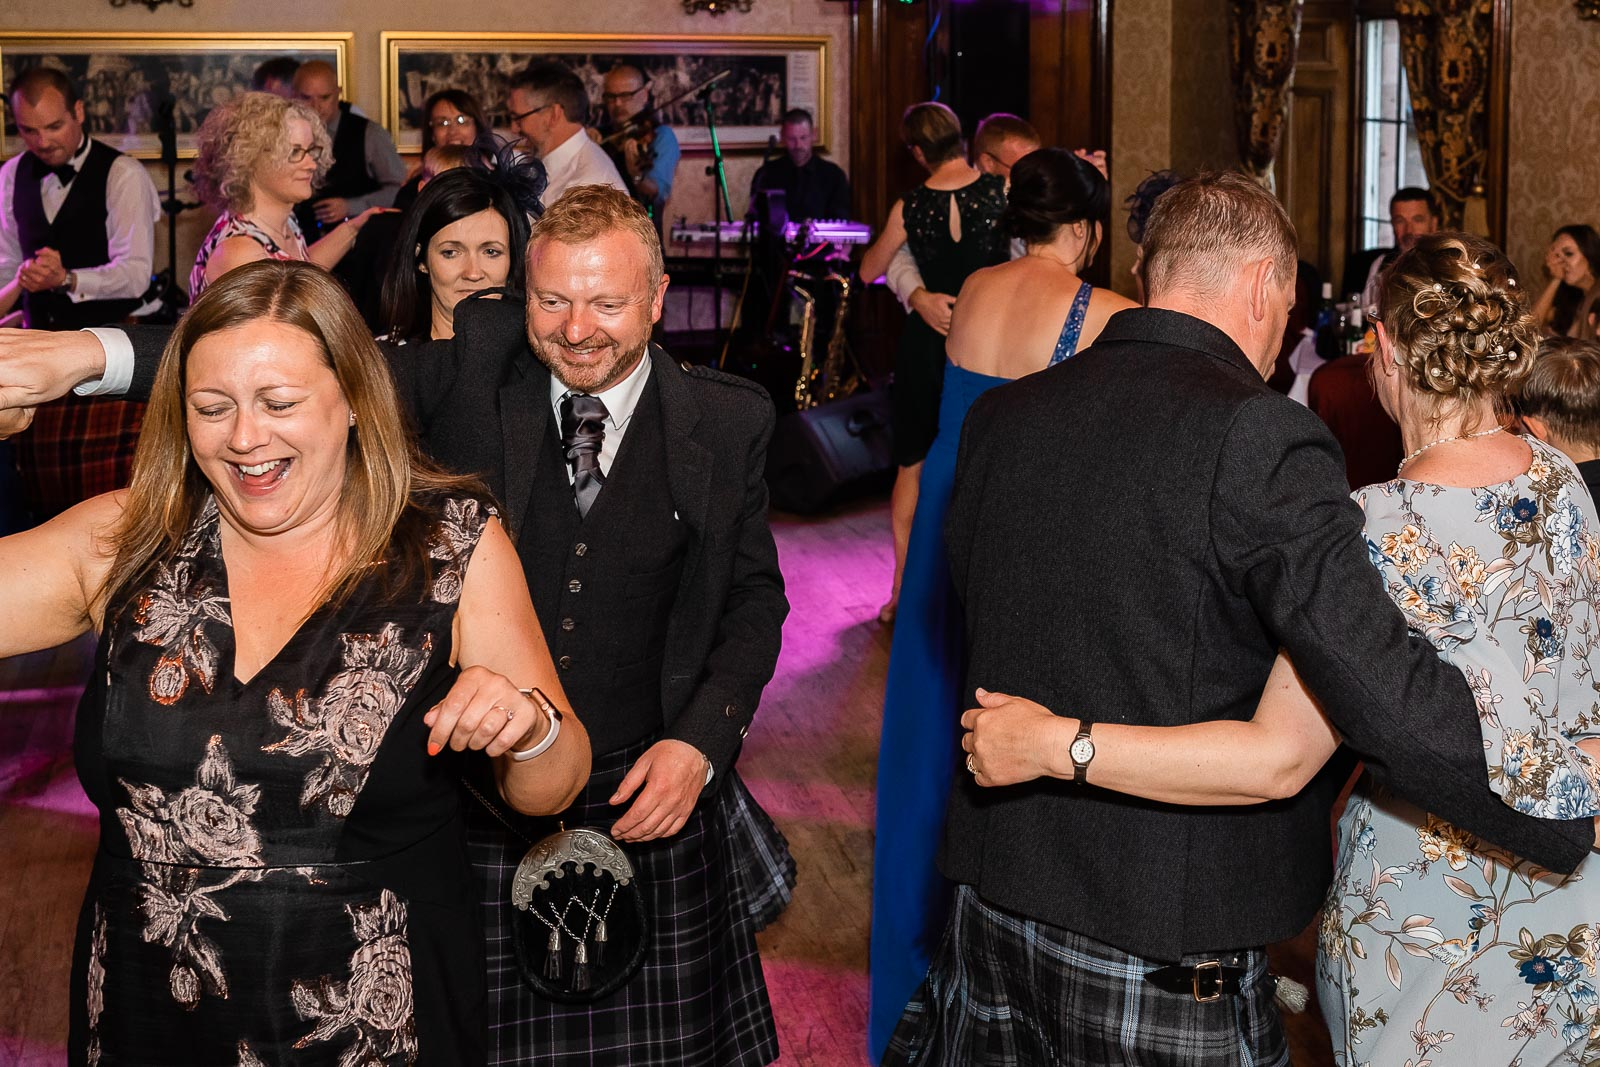 dalhousie_castle_wedding_edinburgh_dearlyphotography (360 of 371).jpg